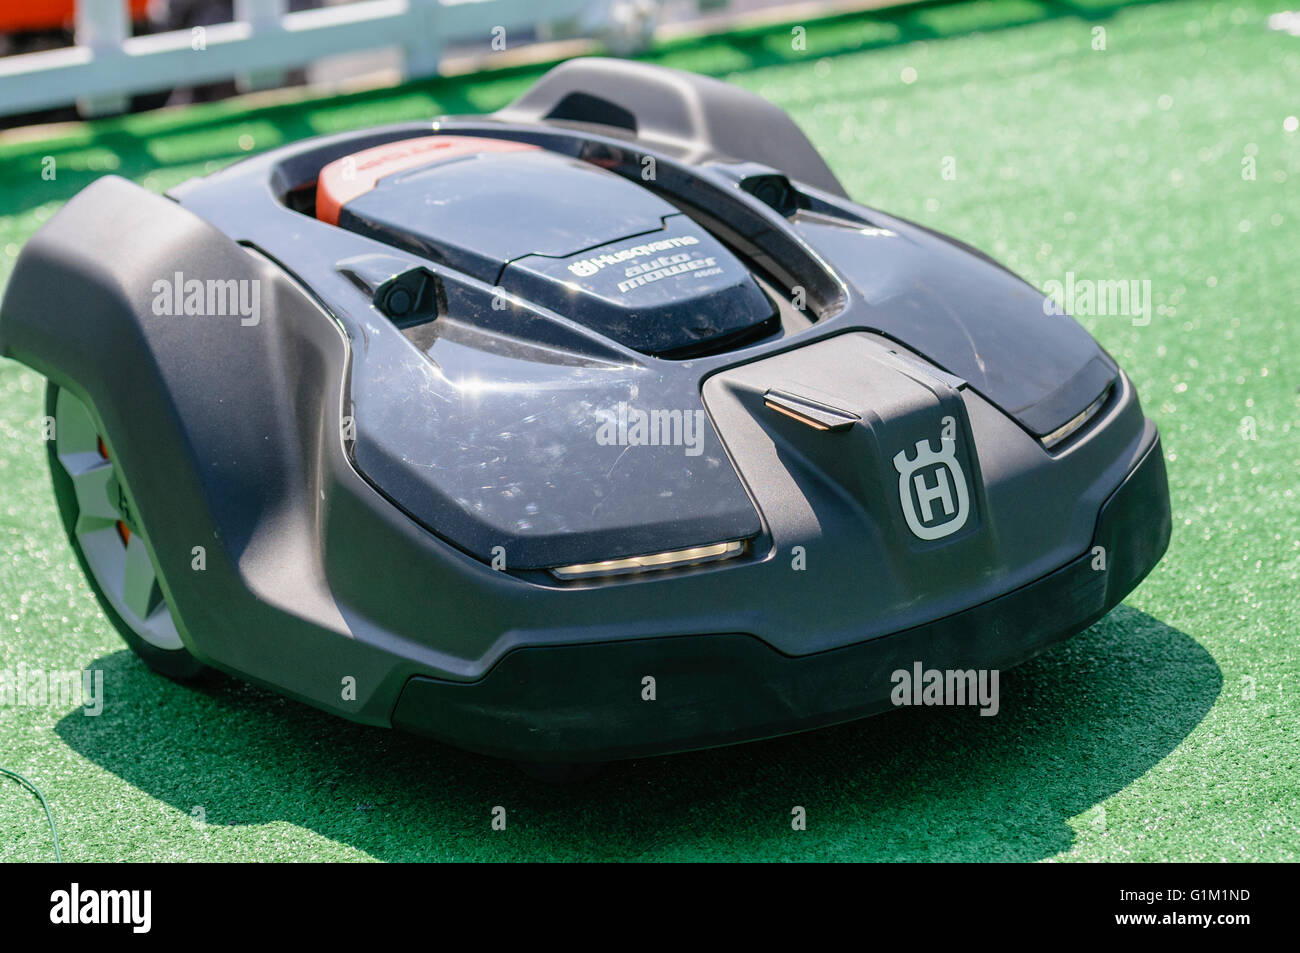 Husqvarna automower robotic automated lawn grass mower. - Stock Image